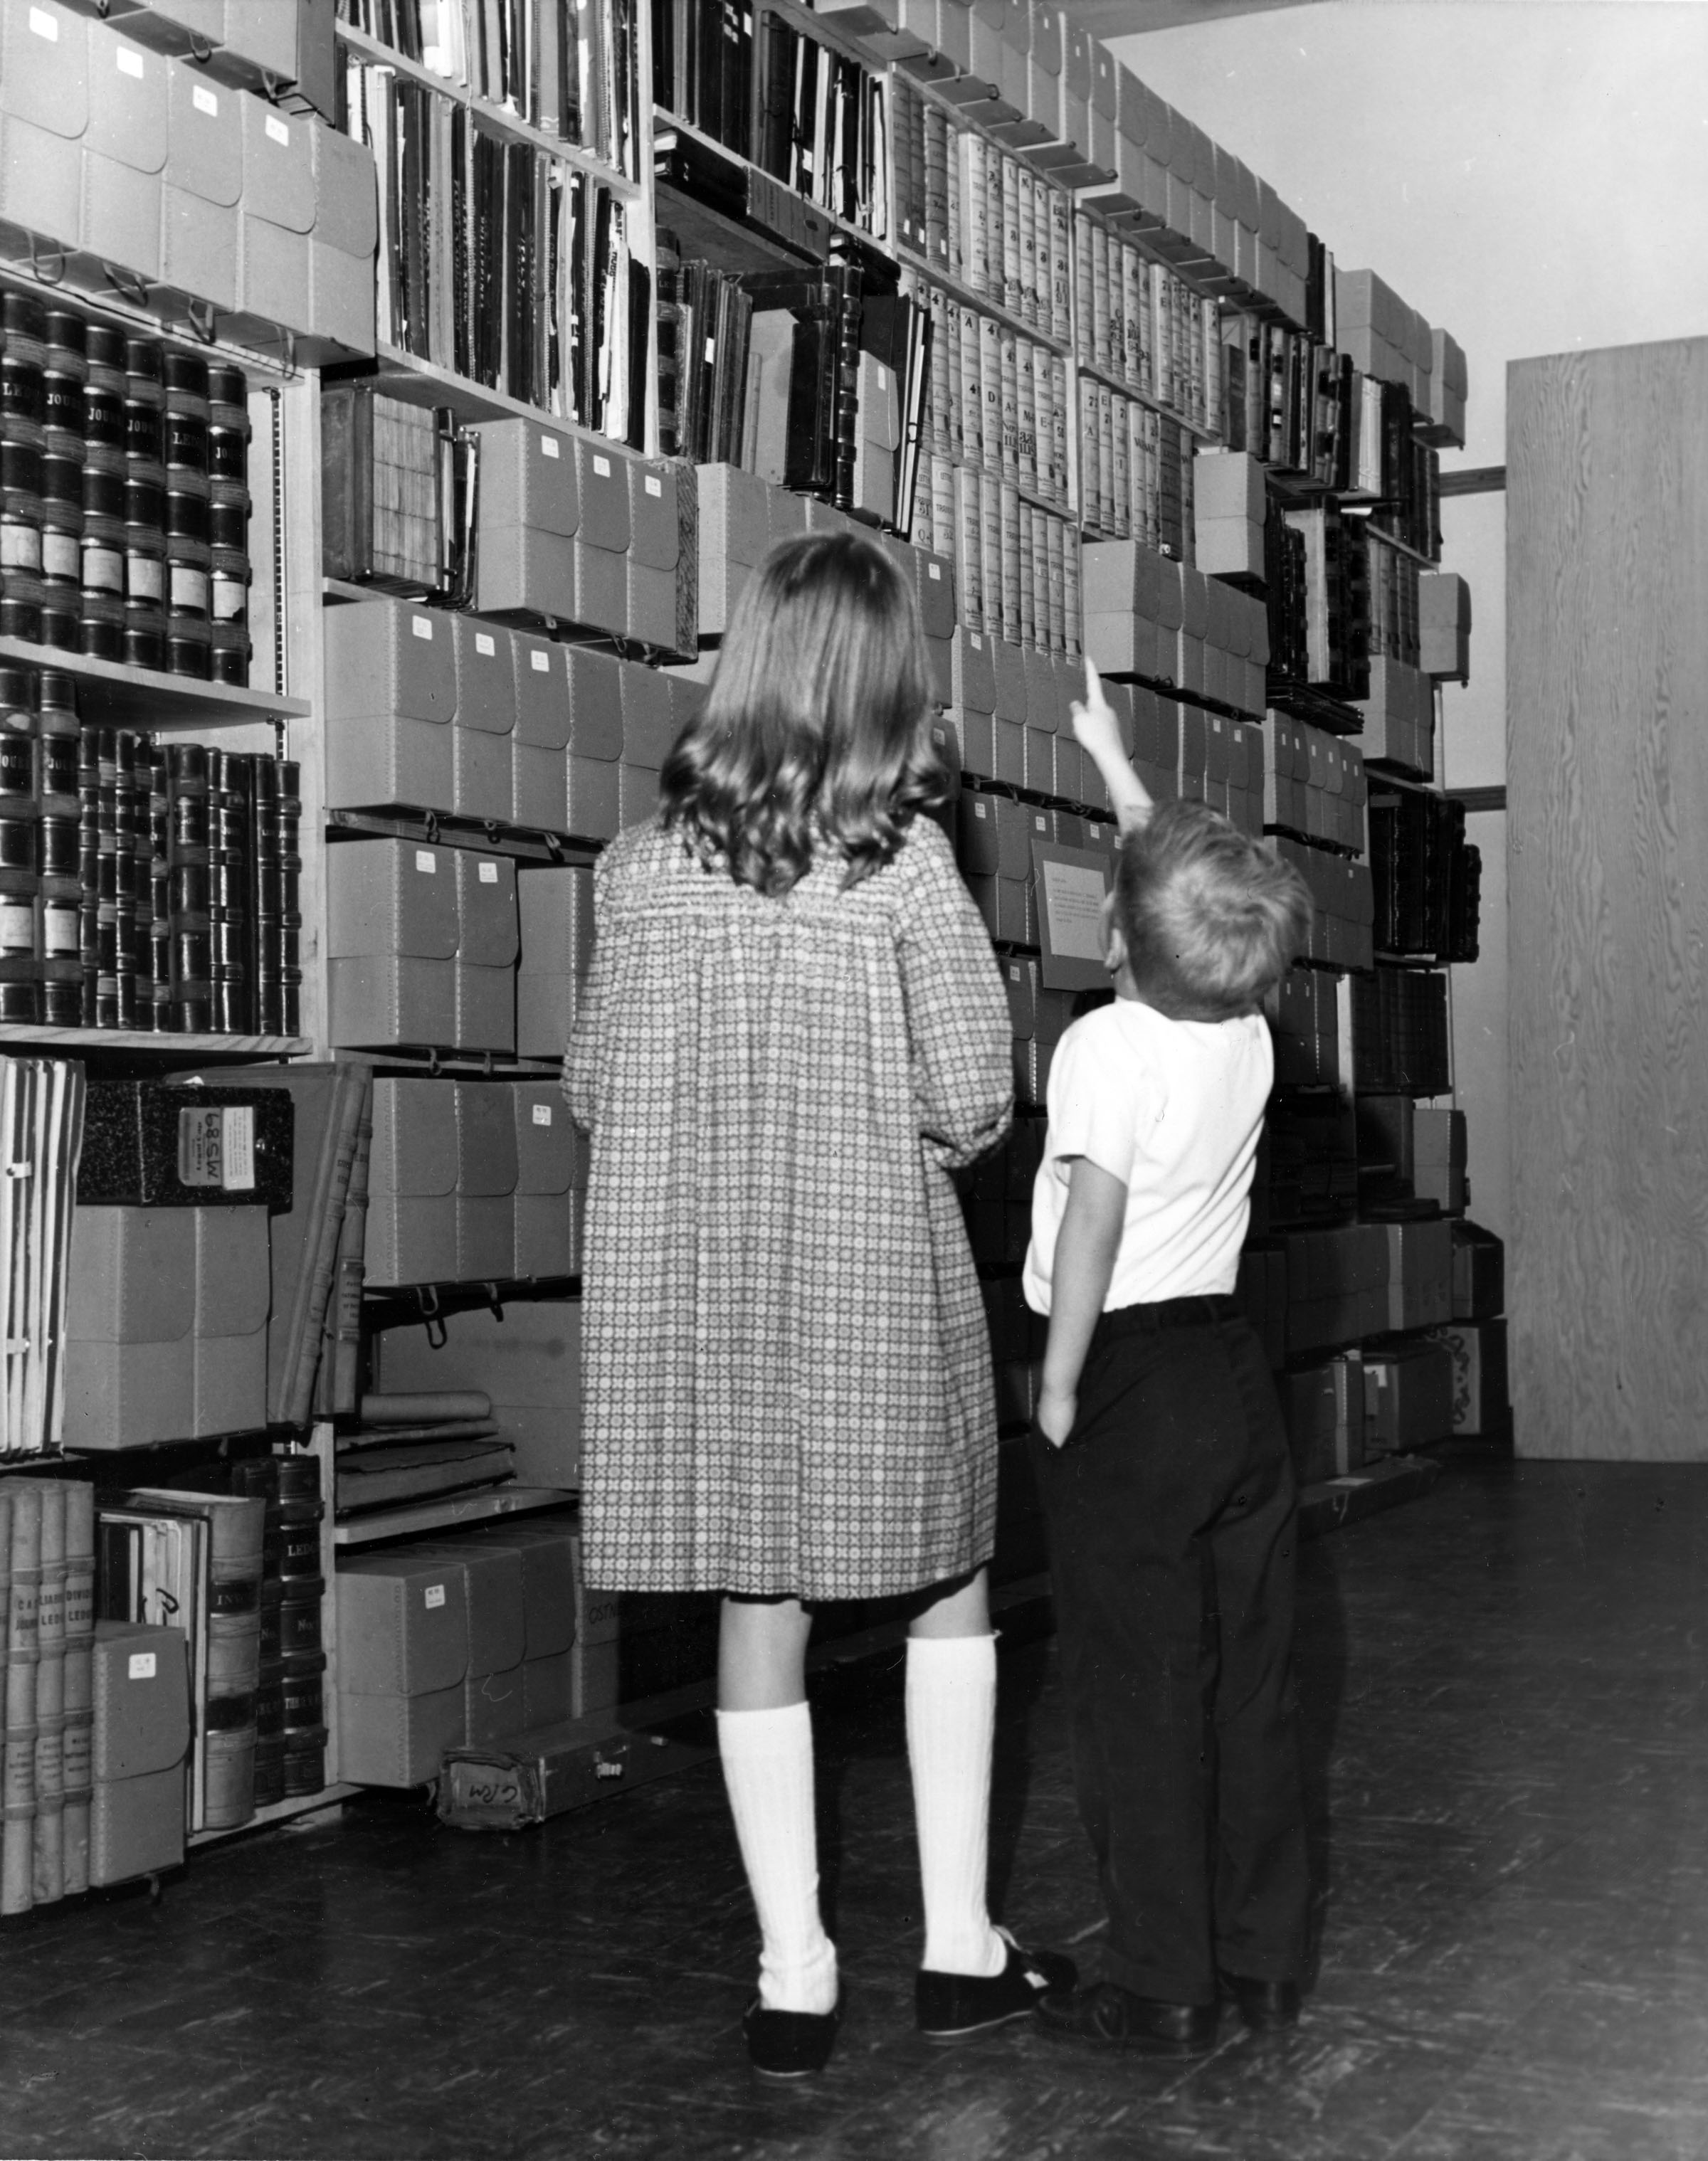 Two children looking at archival shelves